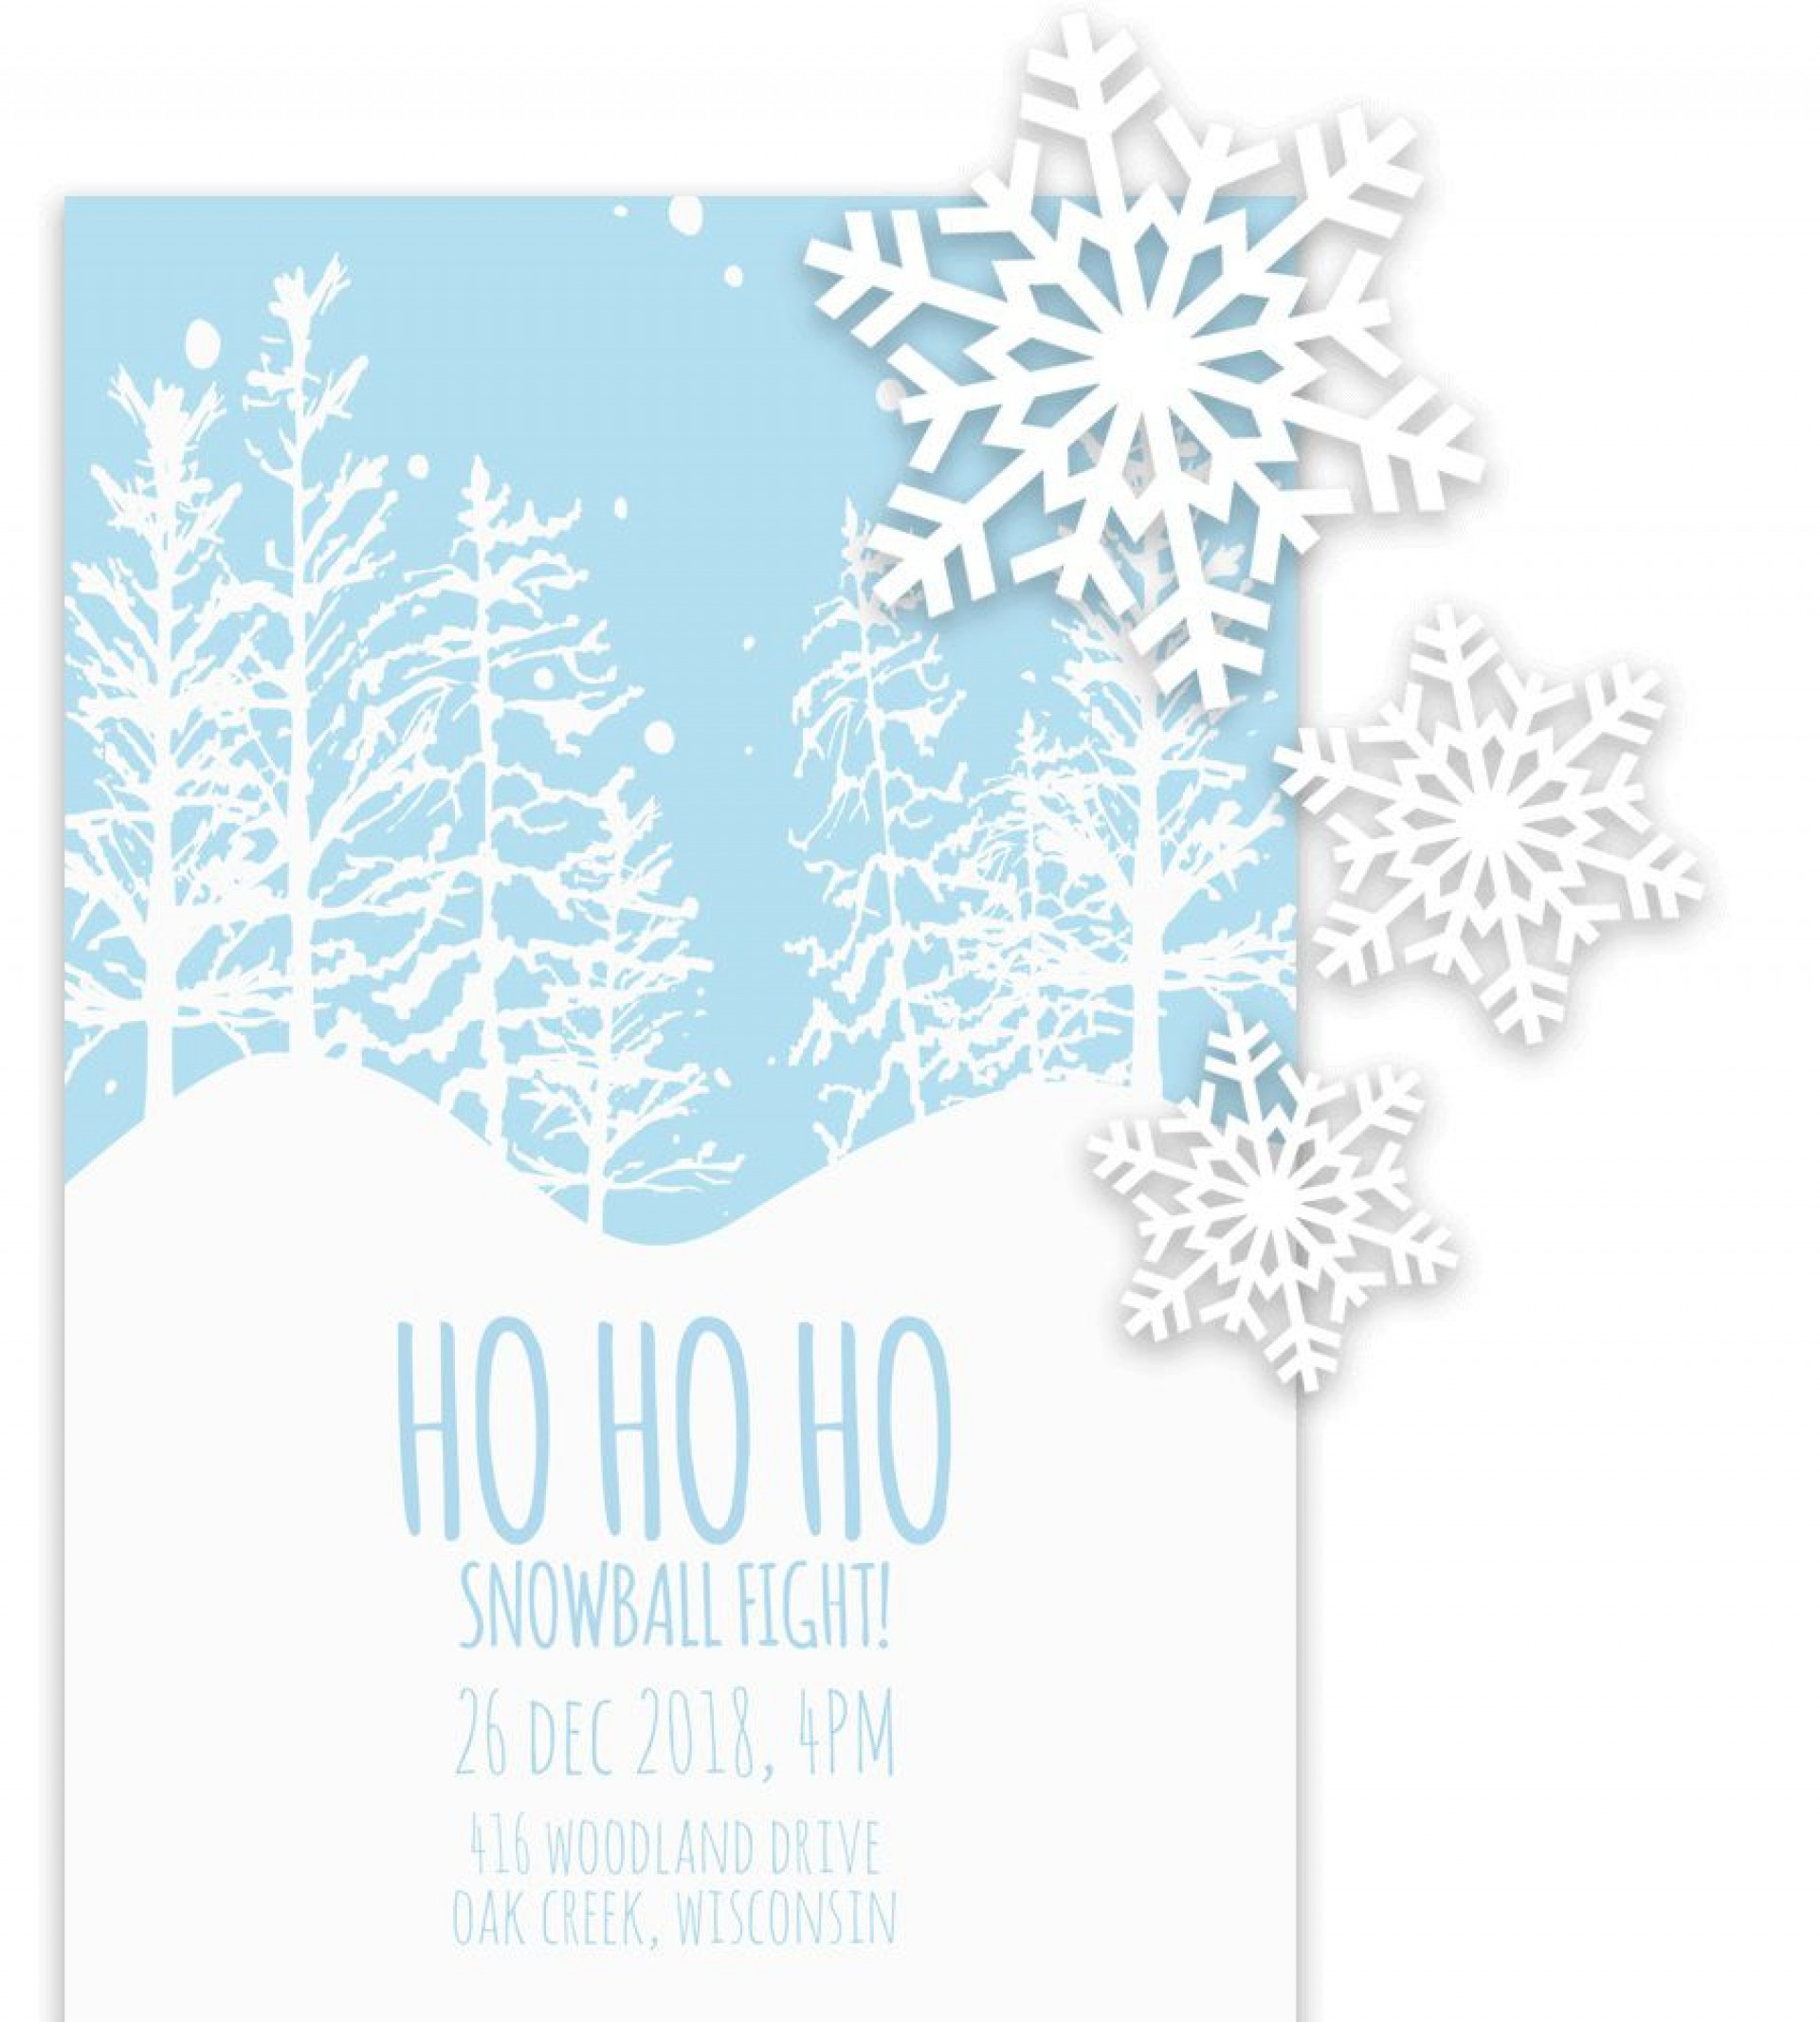 005 Fascinating Free Holiday Invitation Template Example  Online Party Christma1920